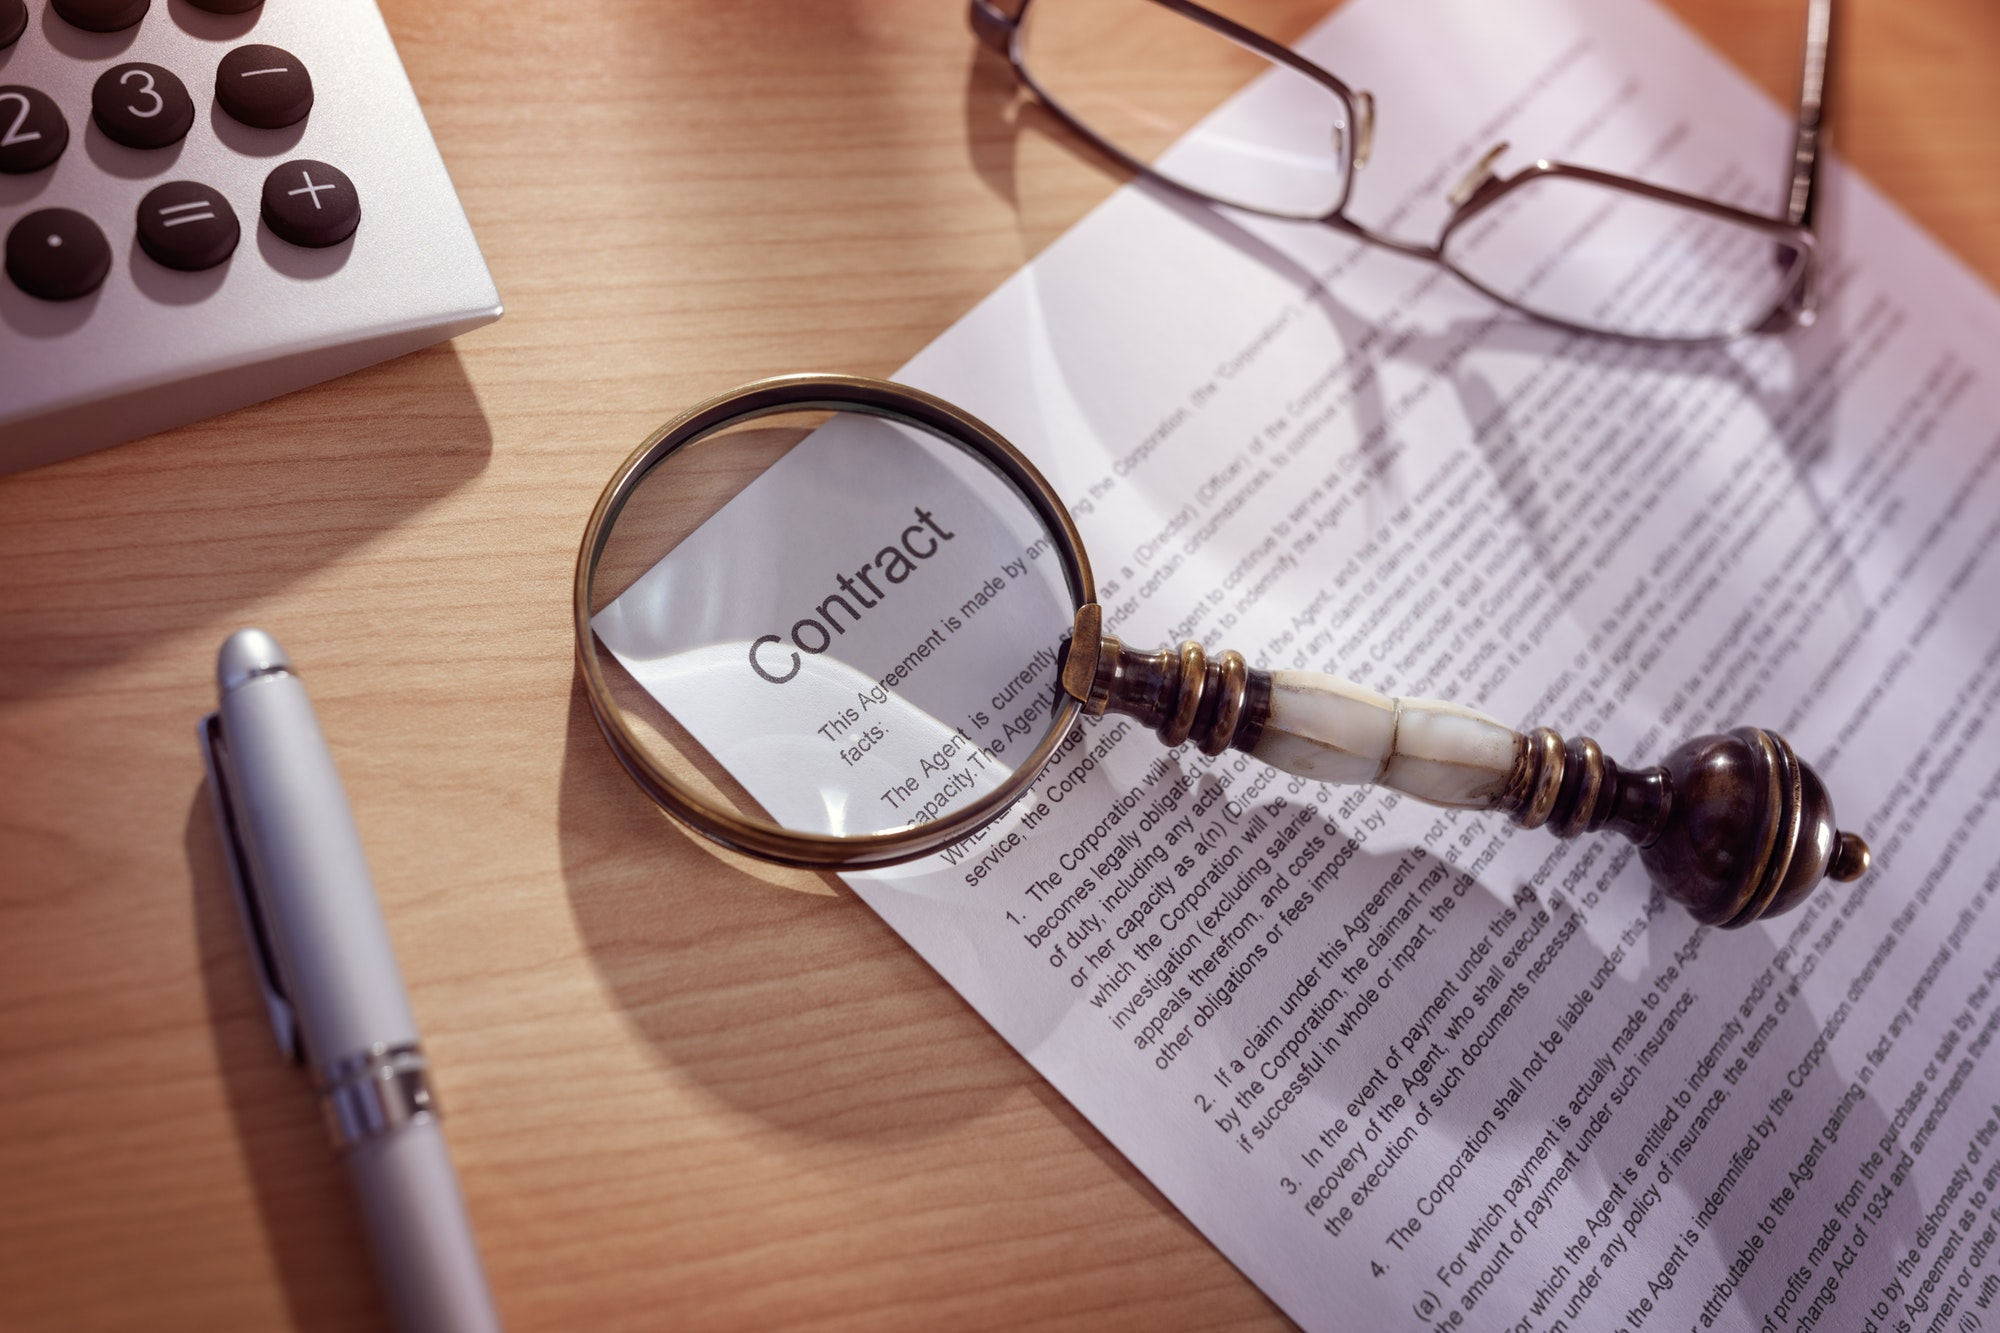 Magnifying glass on a legal contract